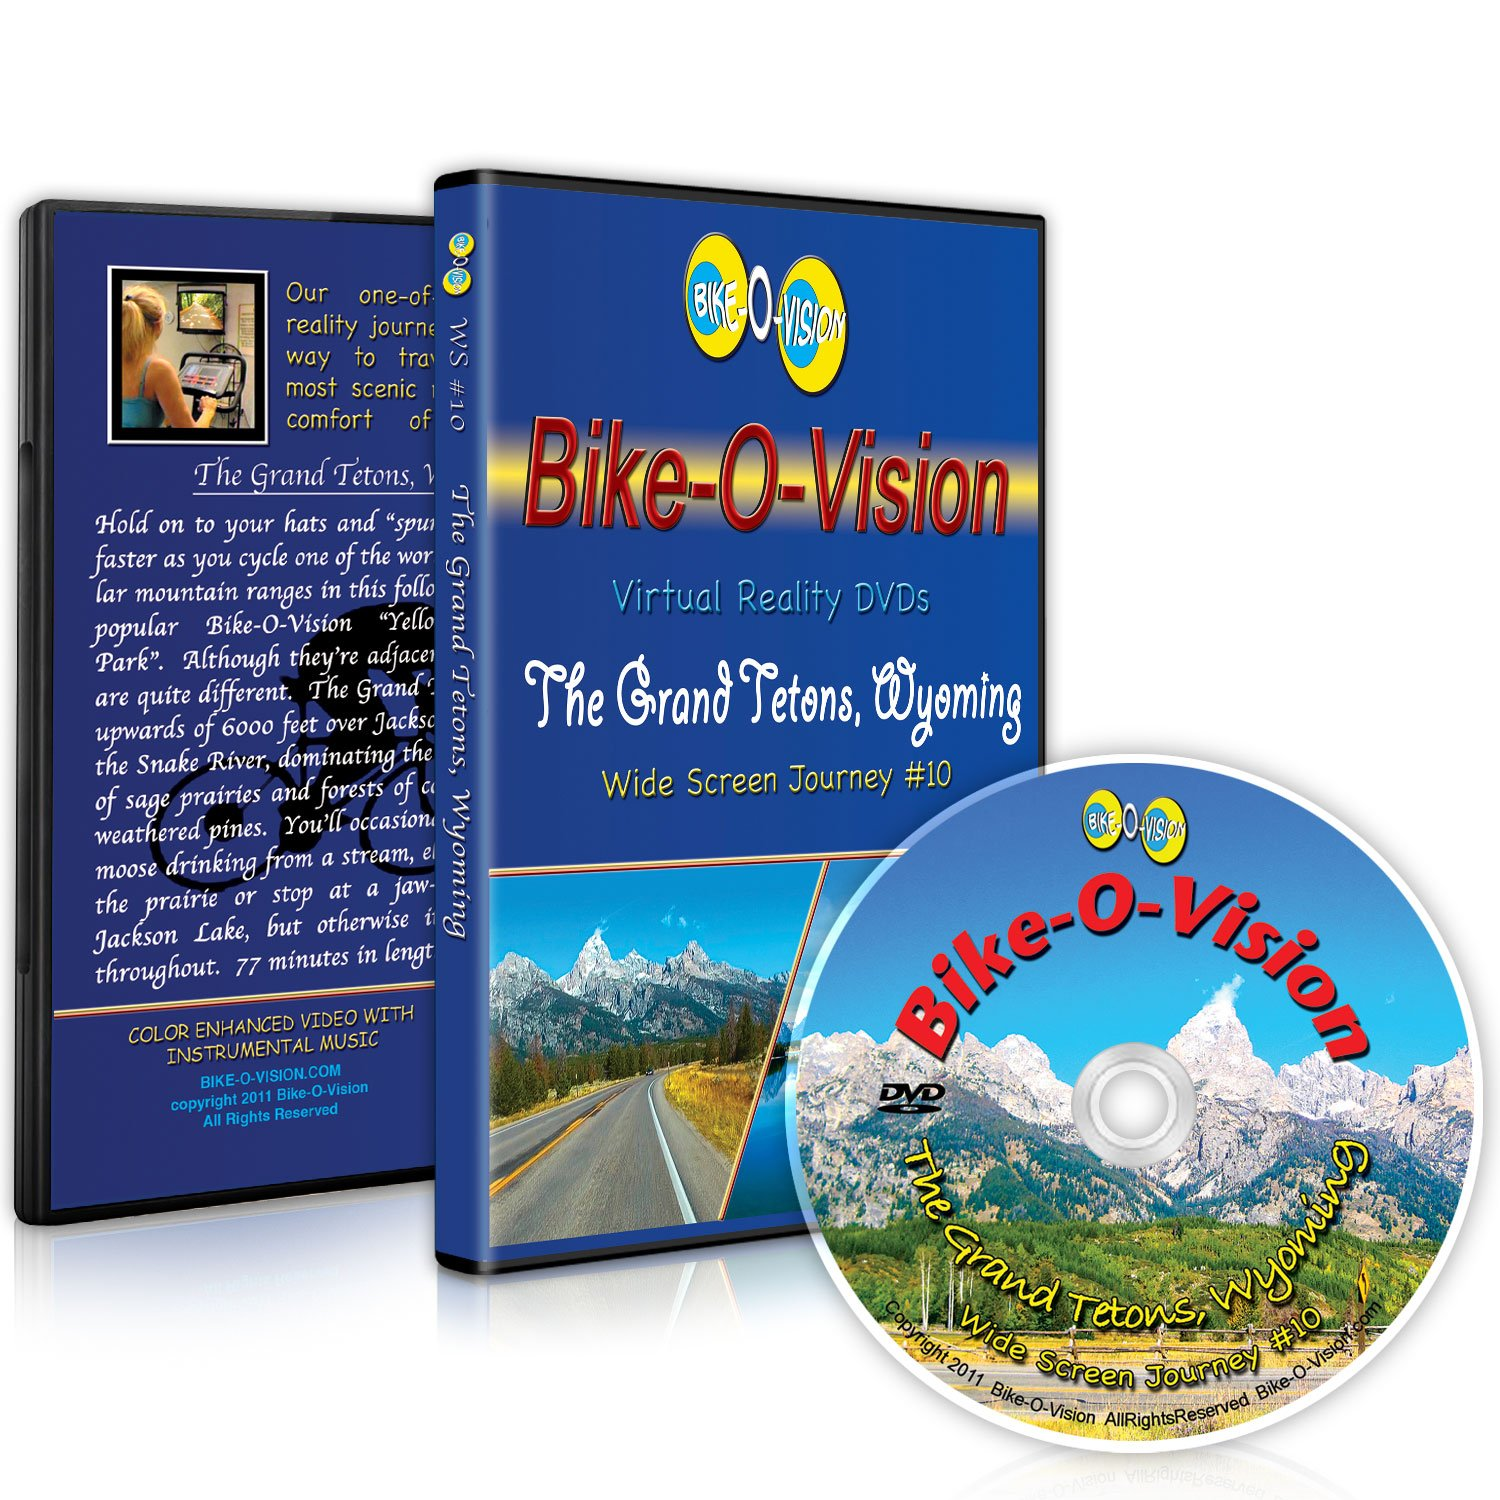 Bike-O-Vision Cycling Video- The Grand All items in Special price for a limited time the store Wyoming #10 WS Tetons